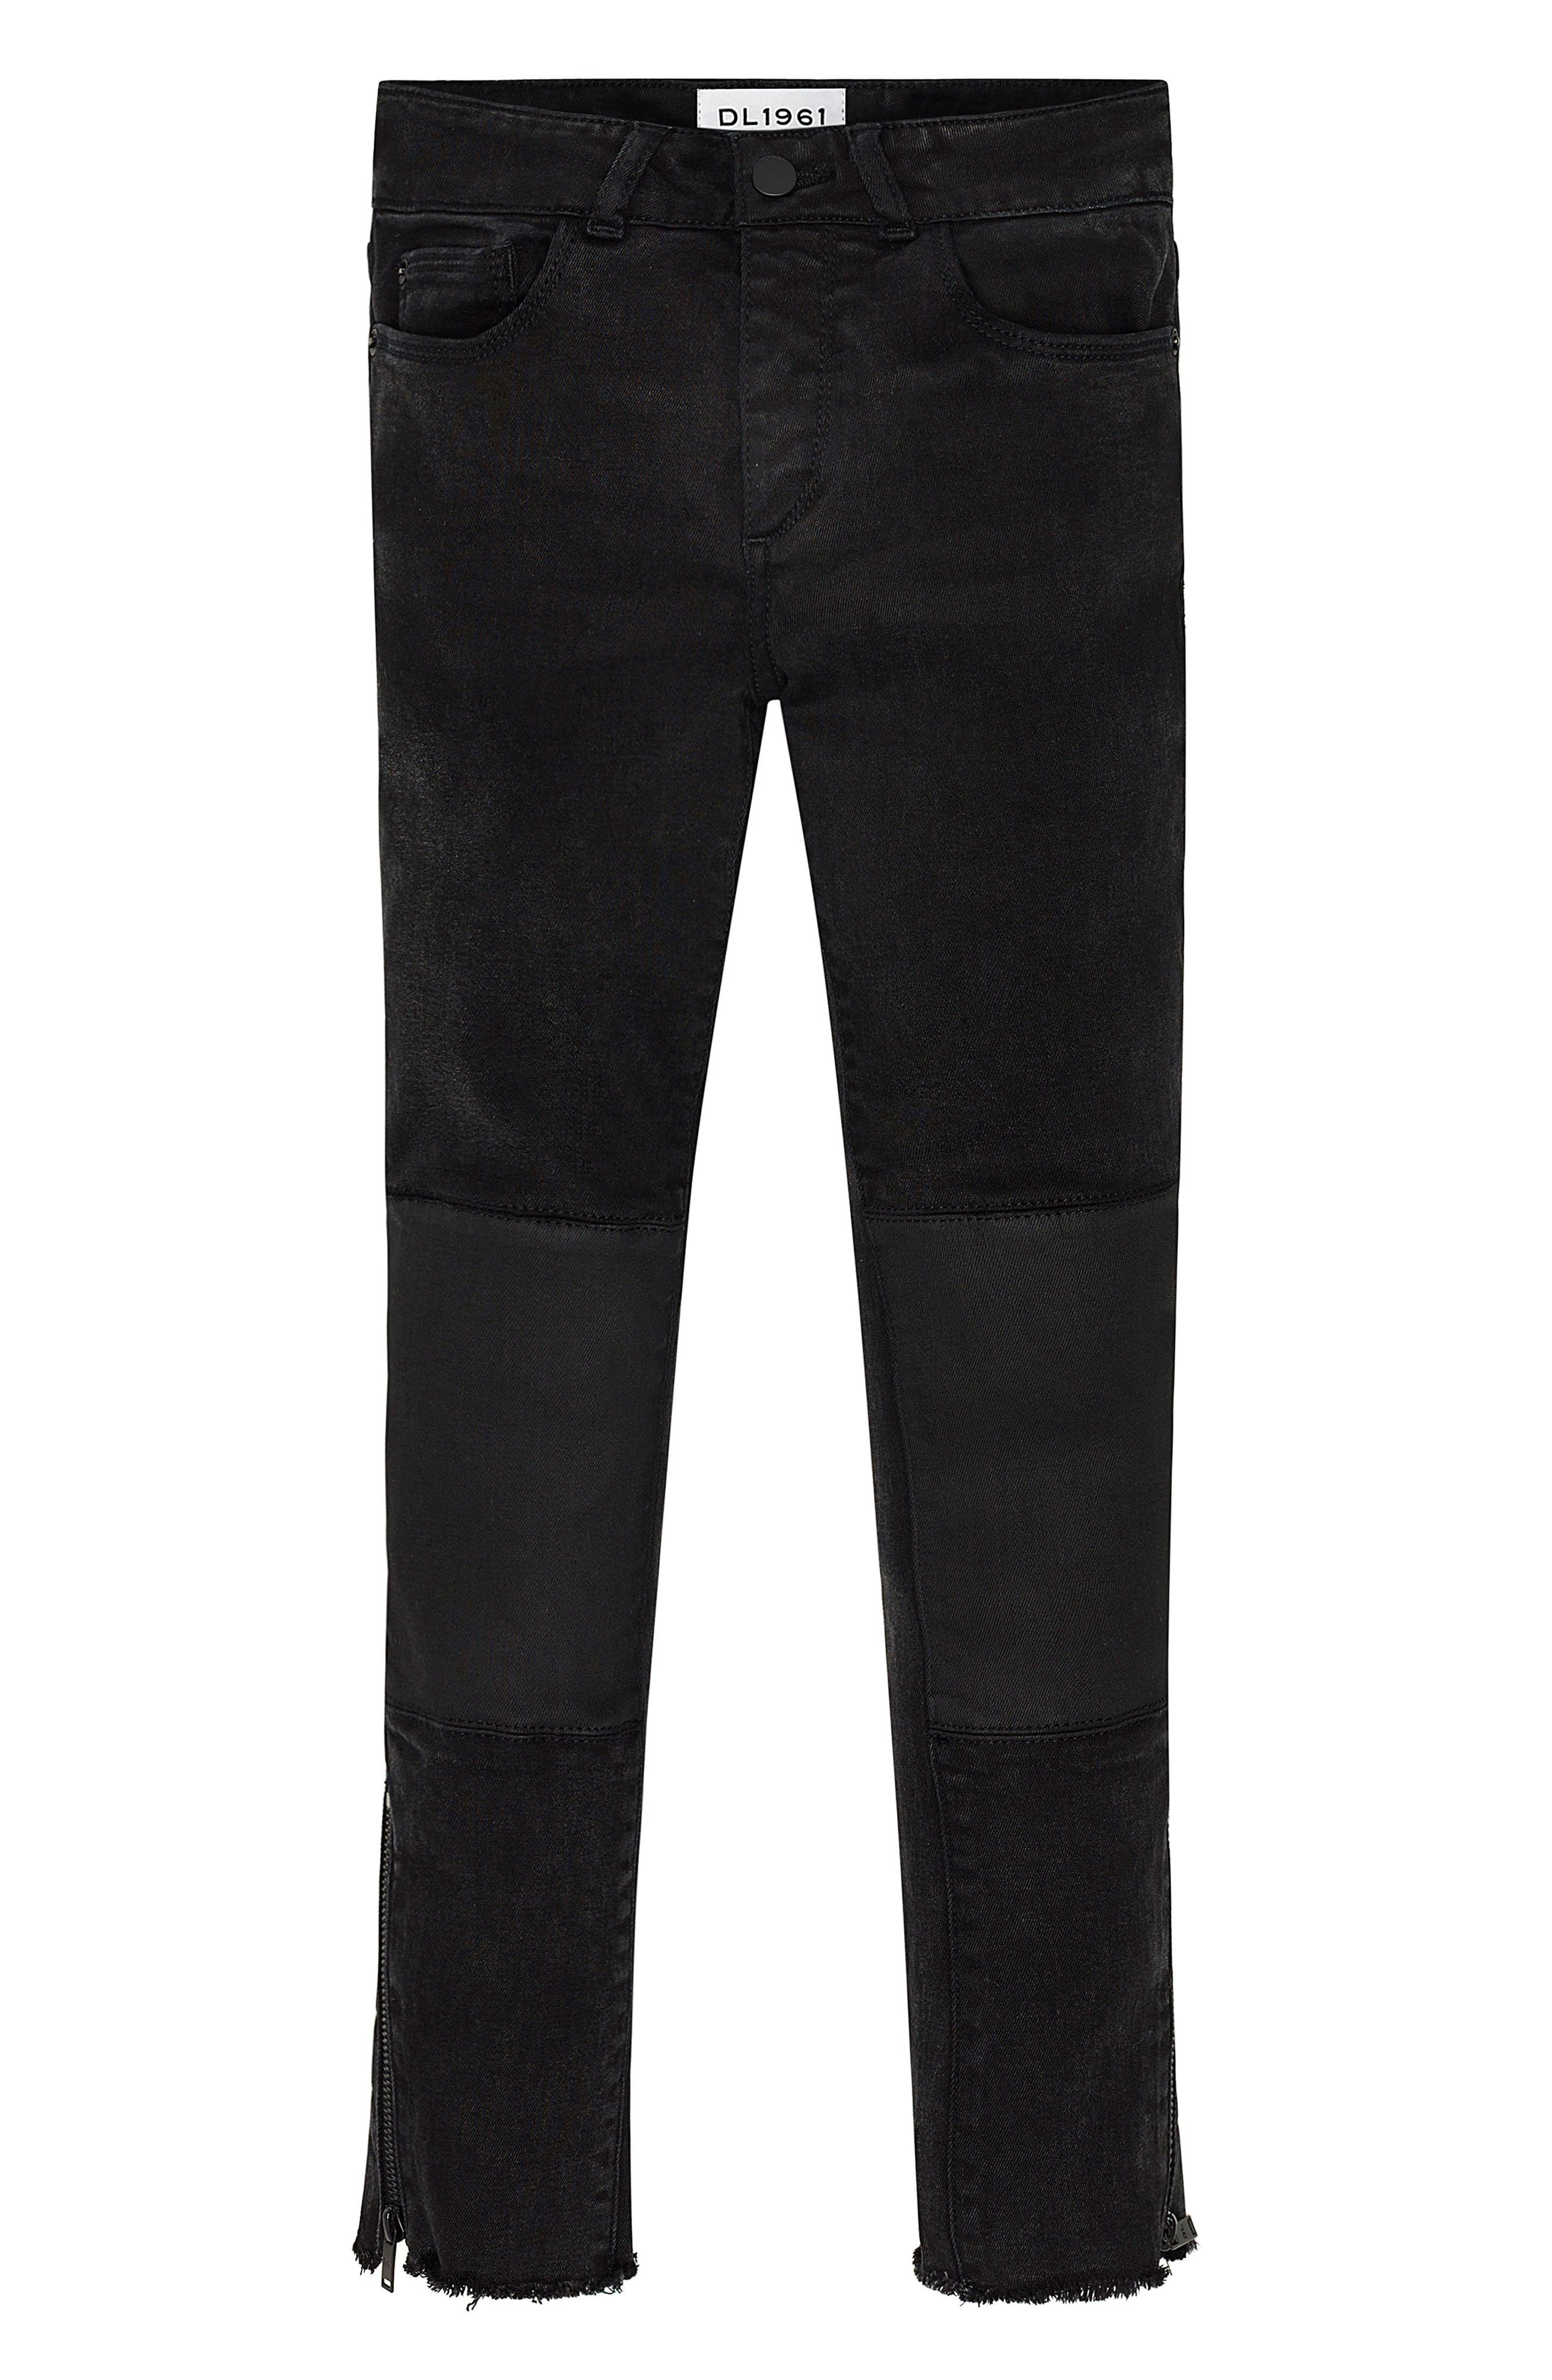 Alternate Image 1 Selected - DL1961 Chloe Moto Skinny Jeans (Big Girls)